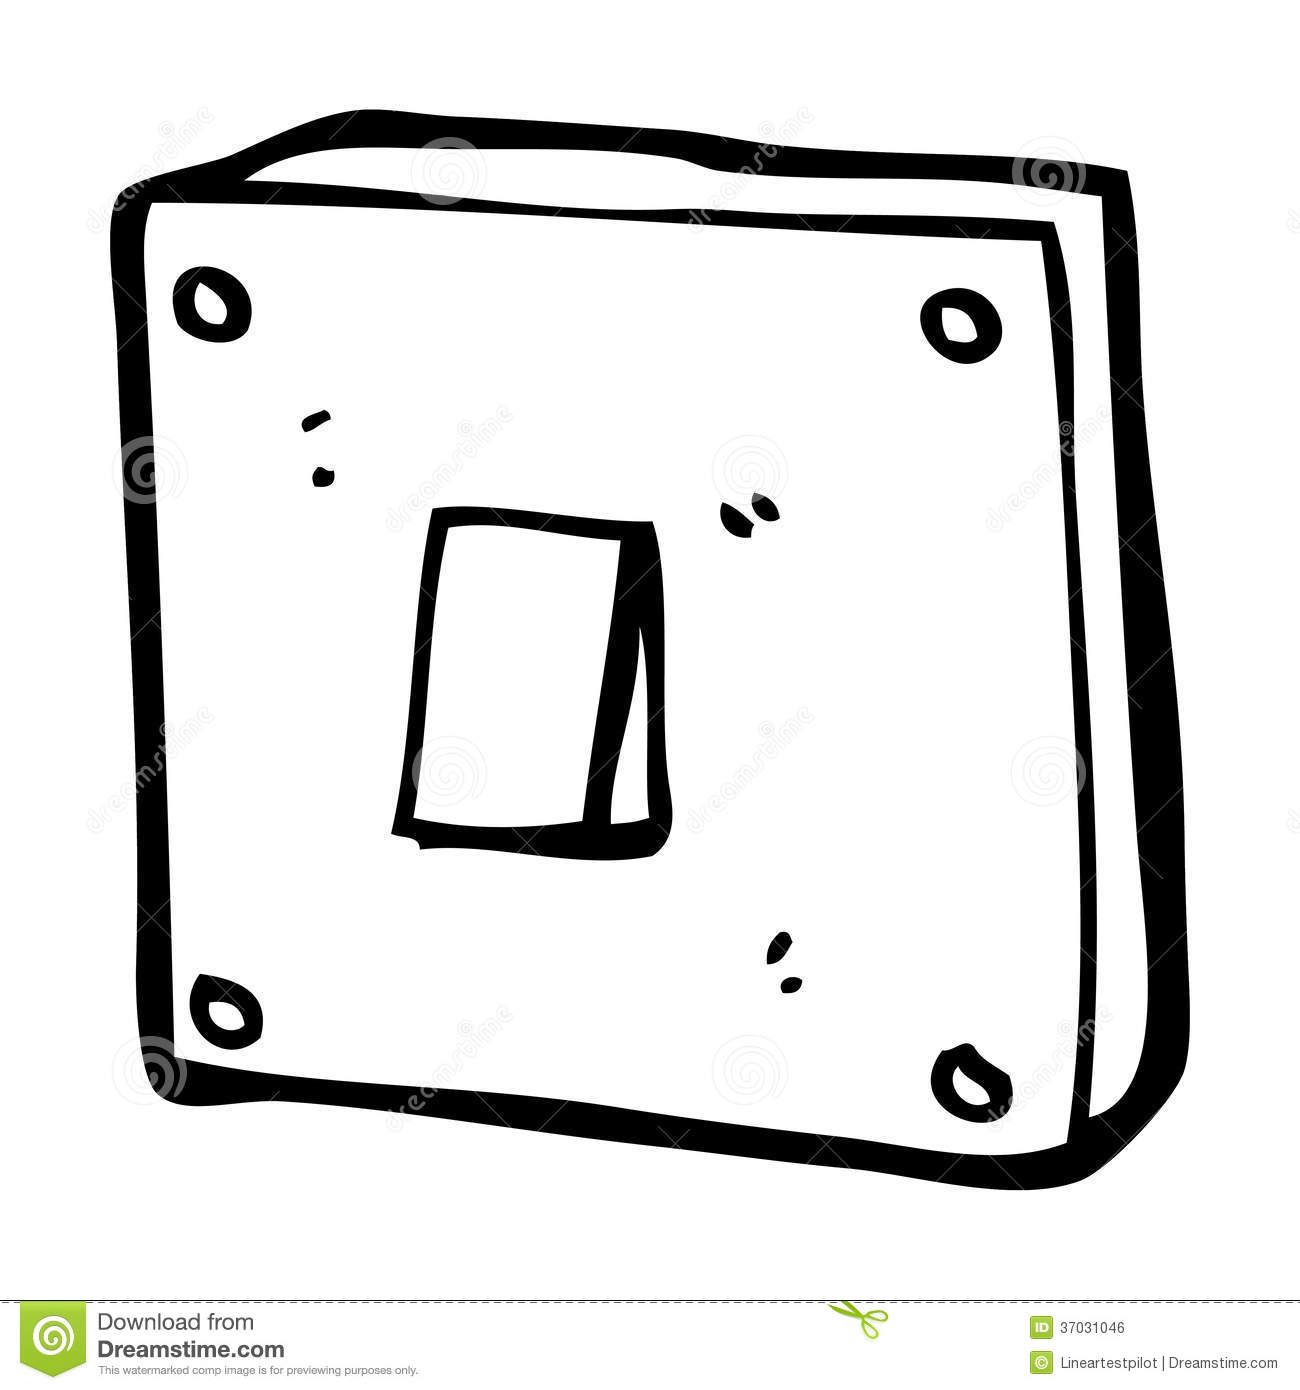 Switches clipart - Clipground